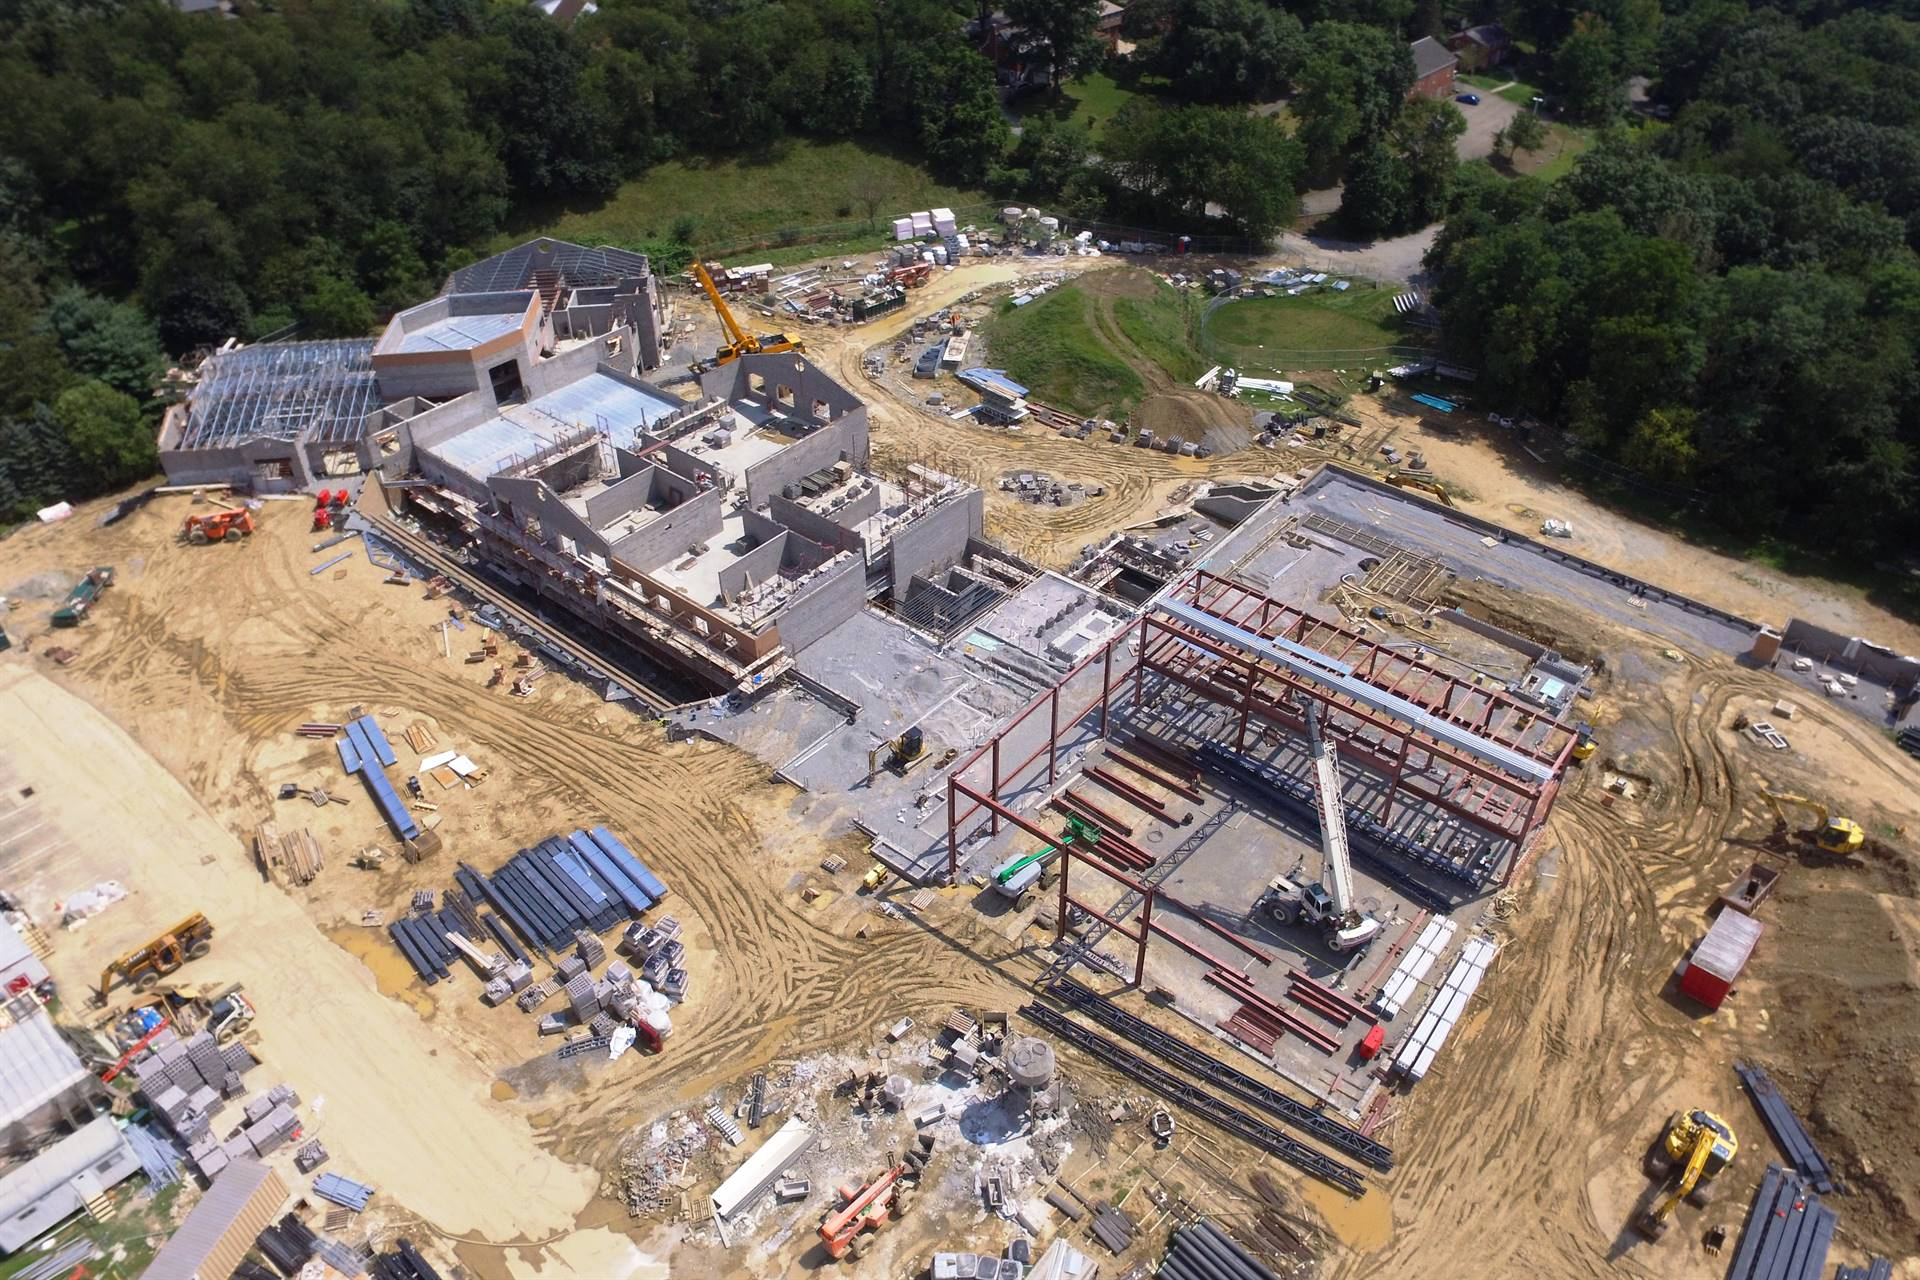 Scott Primary construction site aerial photo from a drone